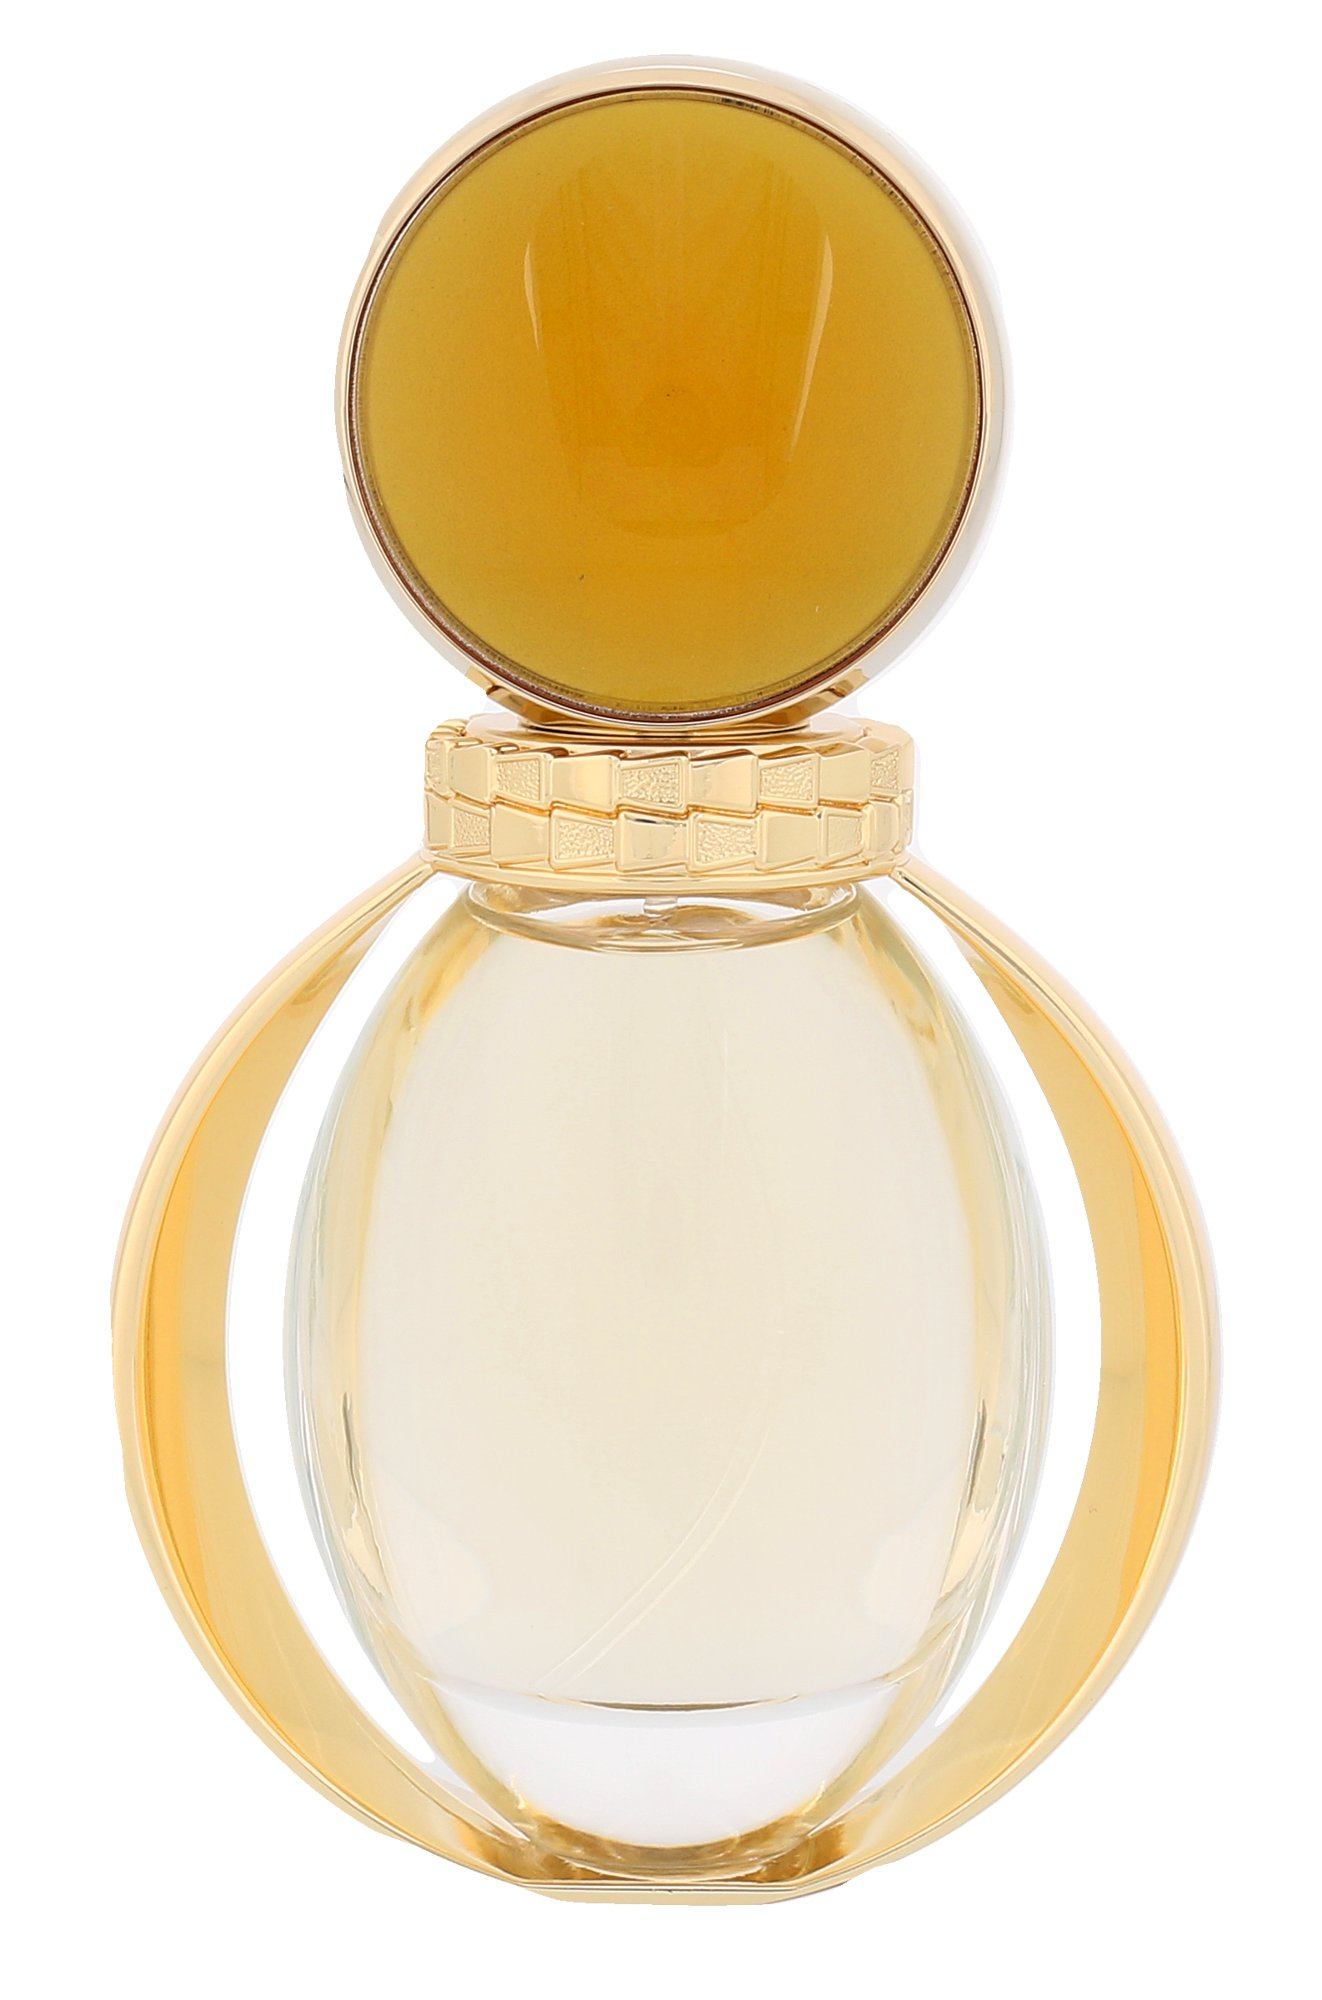 Bvlgari Goldea, Parfumovaná voda 50ml